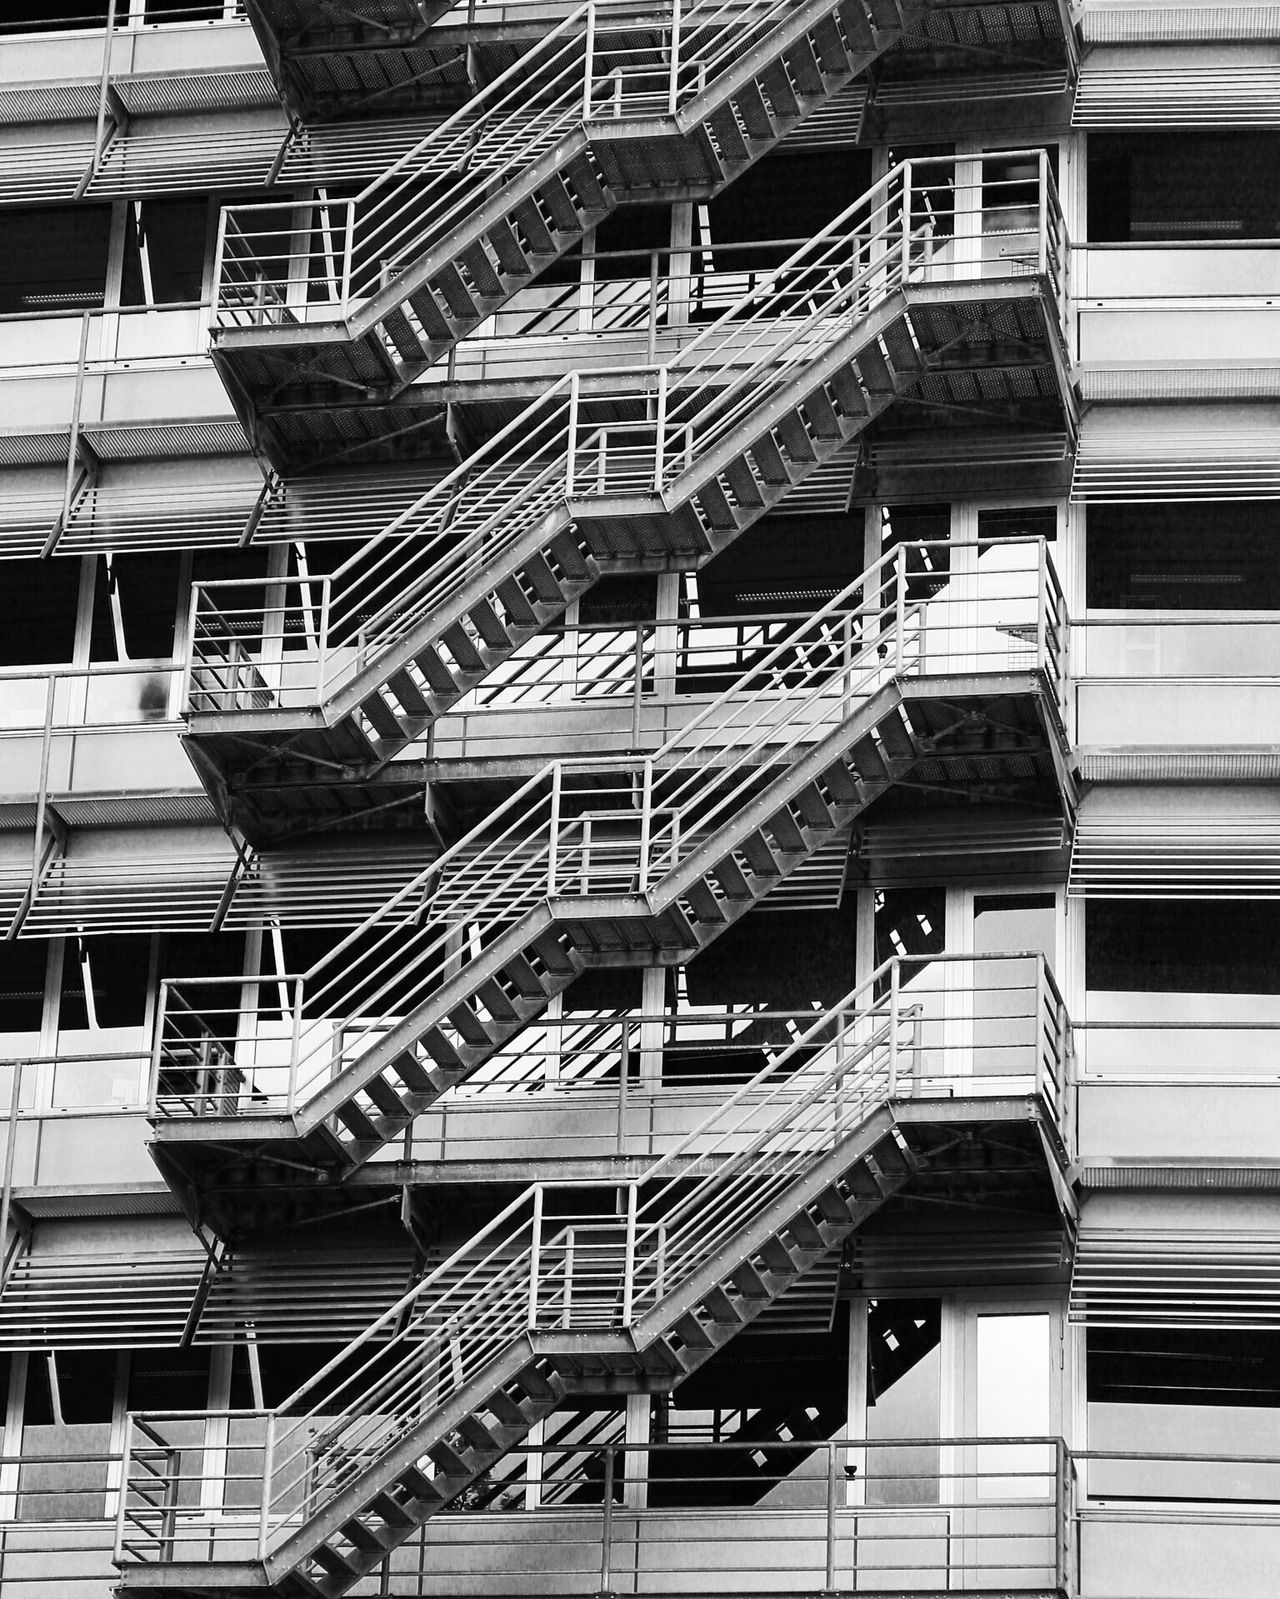 Blsckandwhite Black And White Black & White Stairs Industrial Monochrome Photography